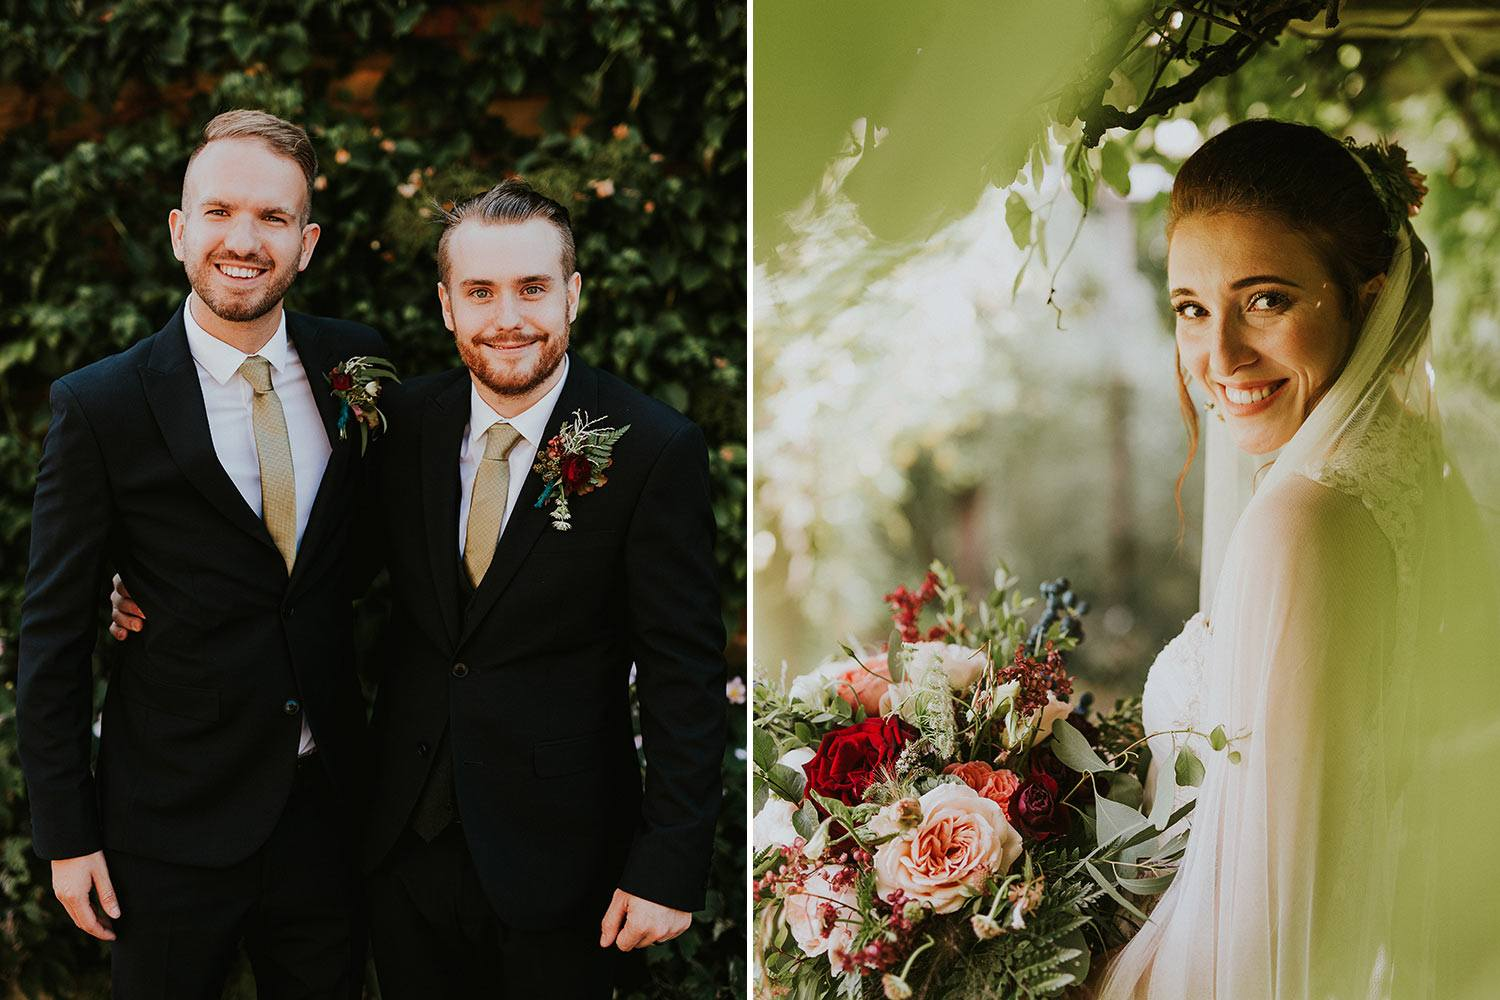 Groom with groomsman and bride with bouquet